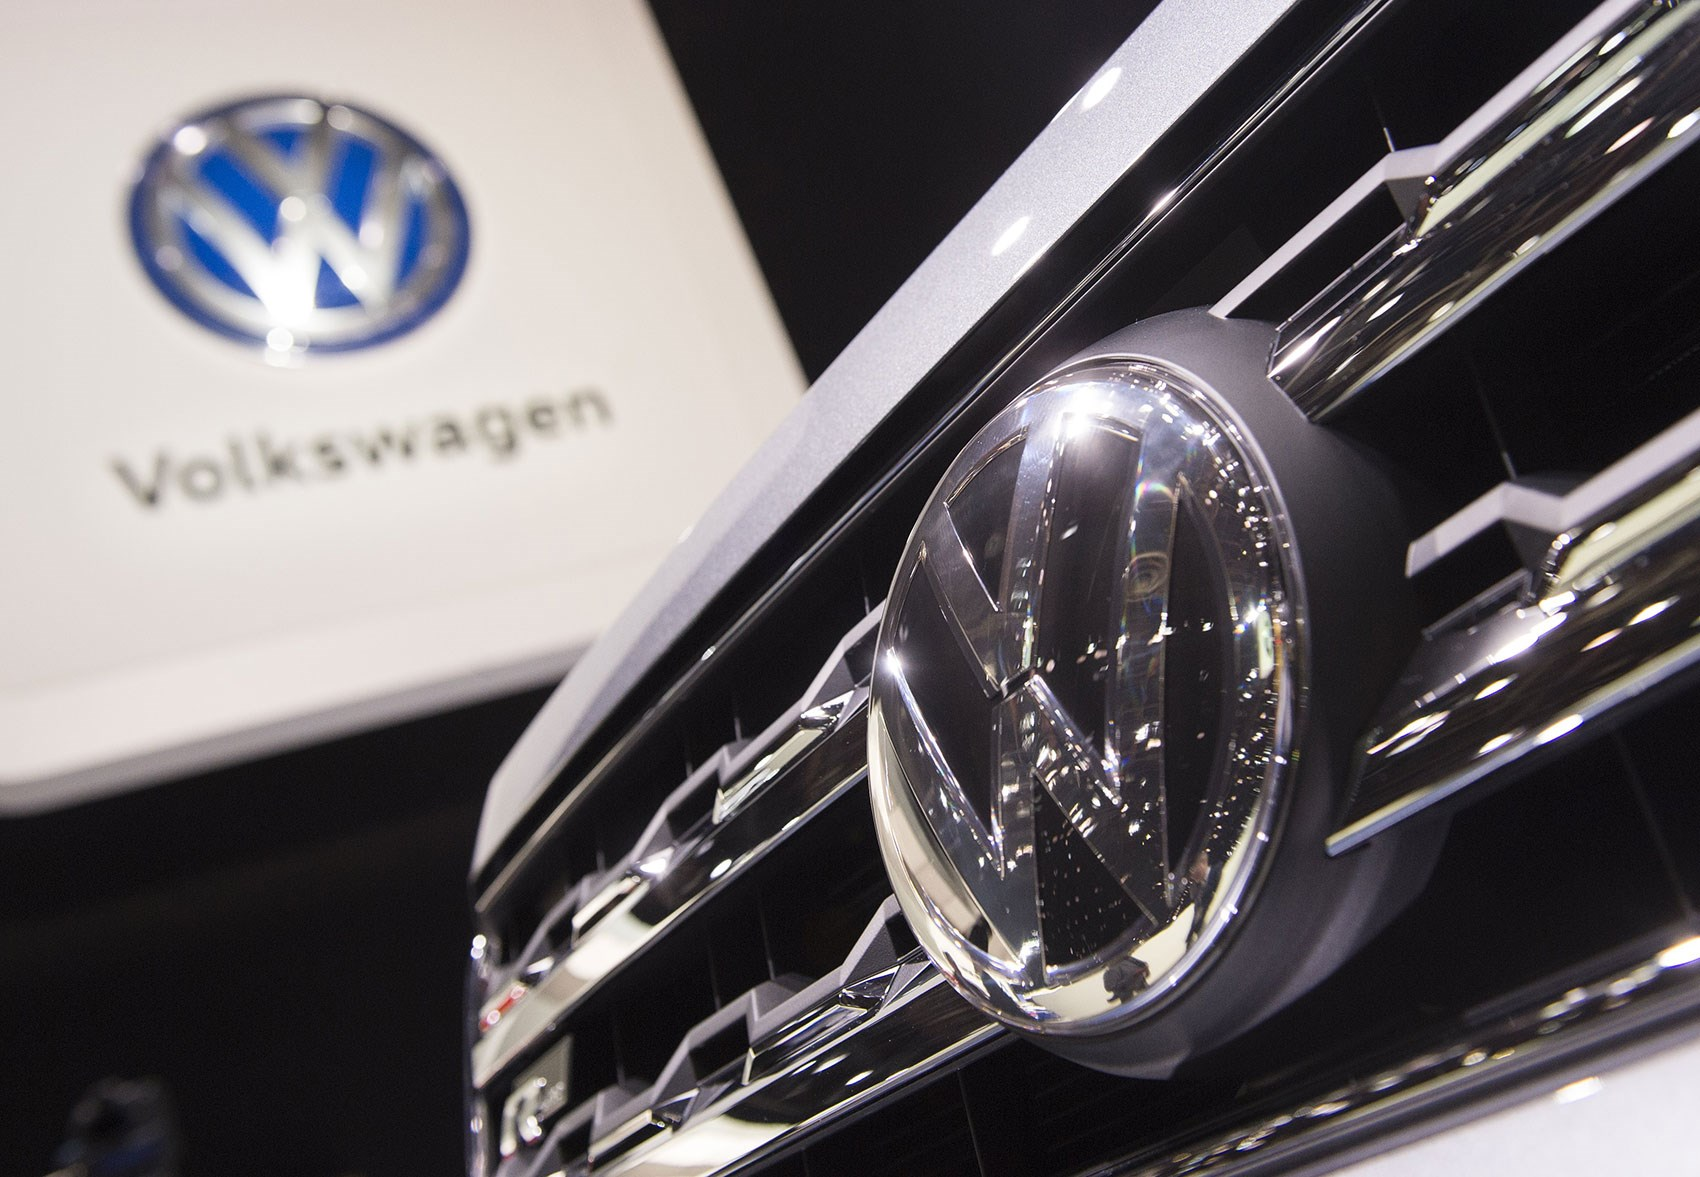 Facing charges, Volkswagen agrees to pay $4.3 billion in emissions cheating scandal